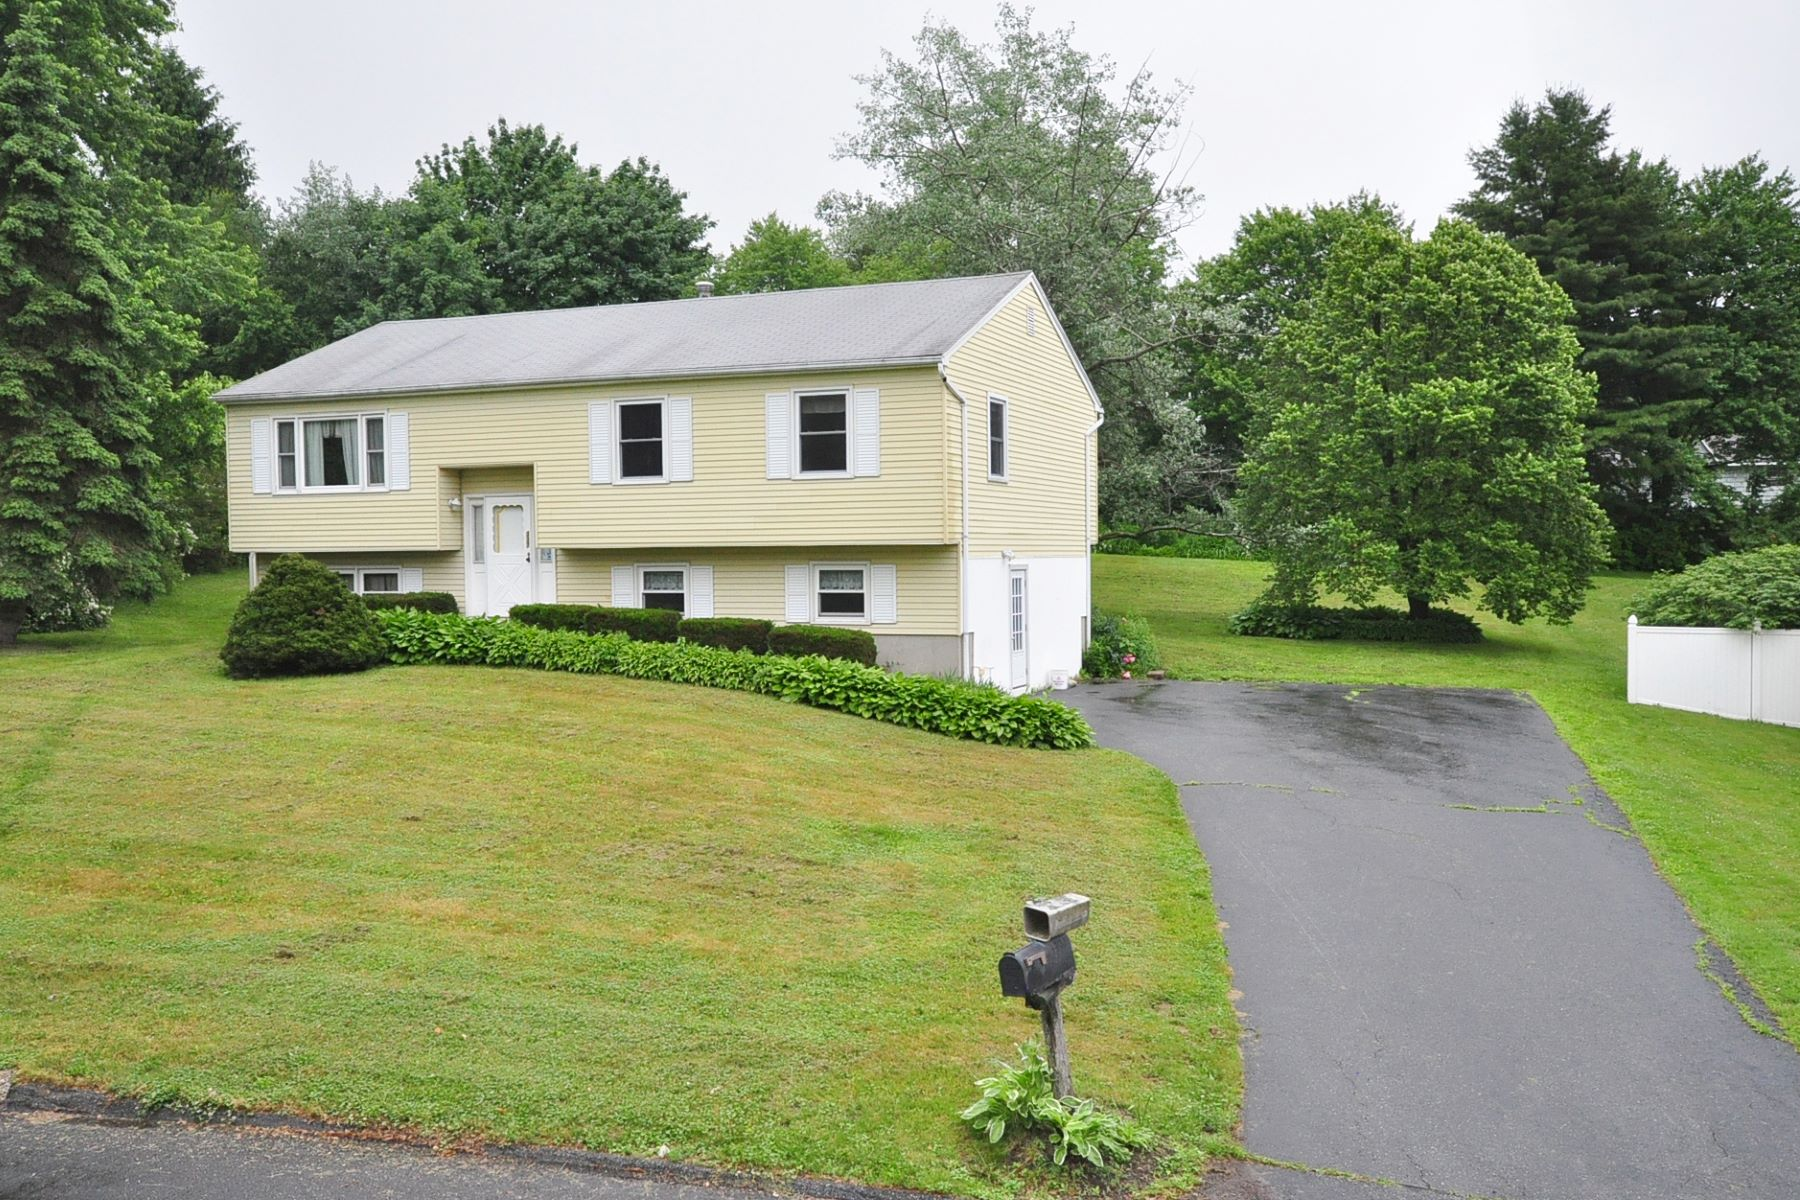 Single Family Homes for Sale at Beautifully Maintained Raised Ranch 337 Oxbow Drive Torrington, Connecticut 06790 United States